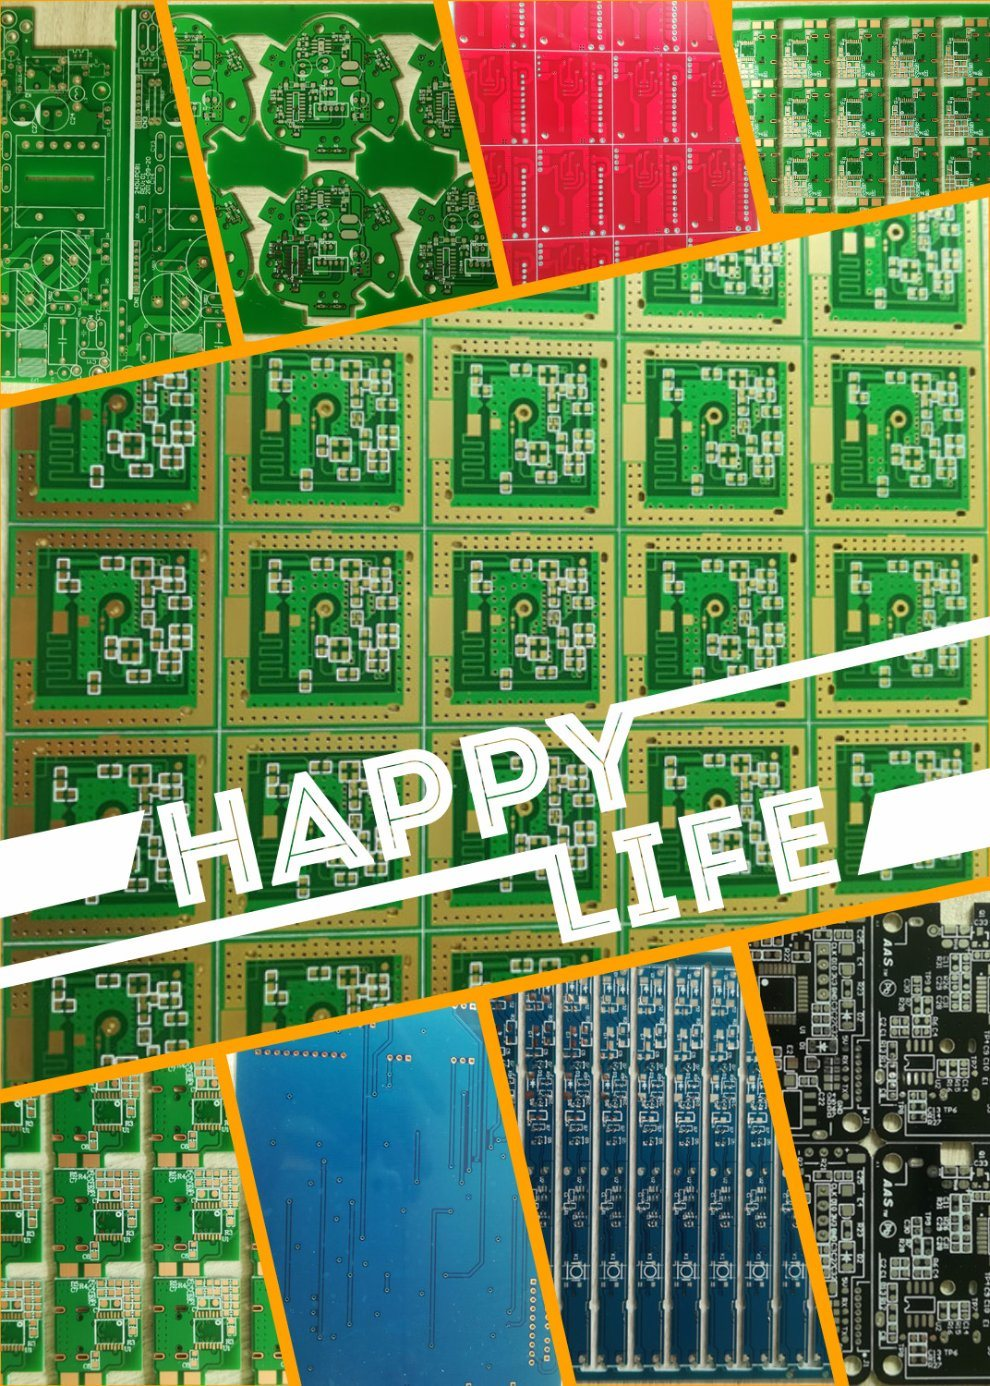 China Professional Printed Circuit Board Factory Make Multilayer Pcb How Do You A With High Quality